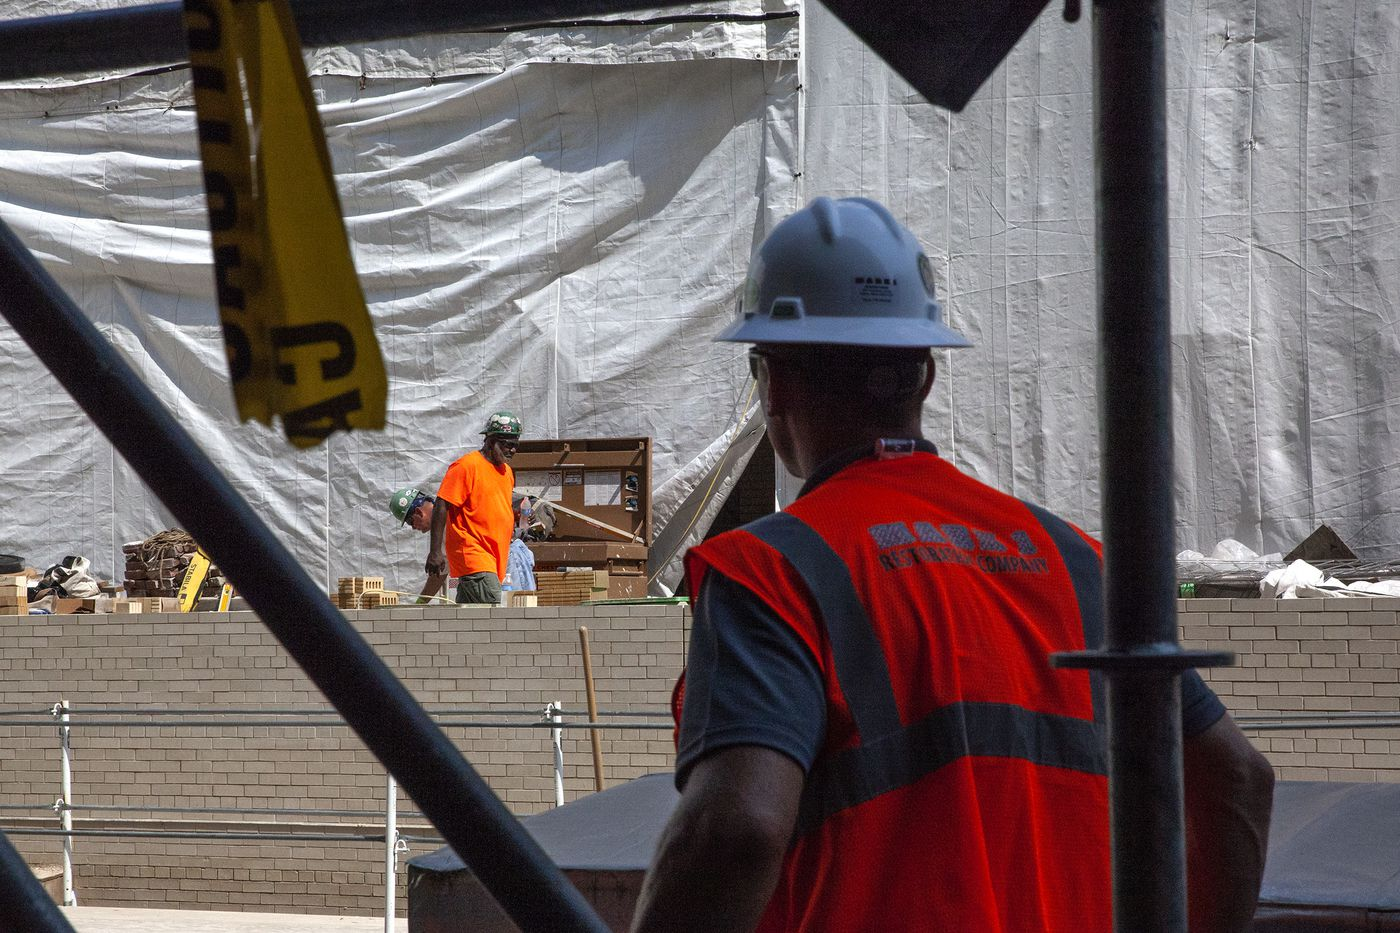 Construction workers are uniquely at risk for heroin overdoses, study finds